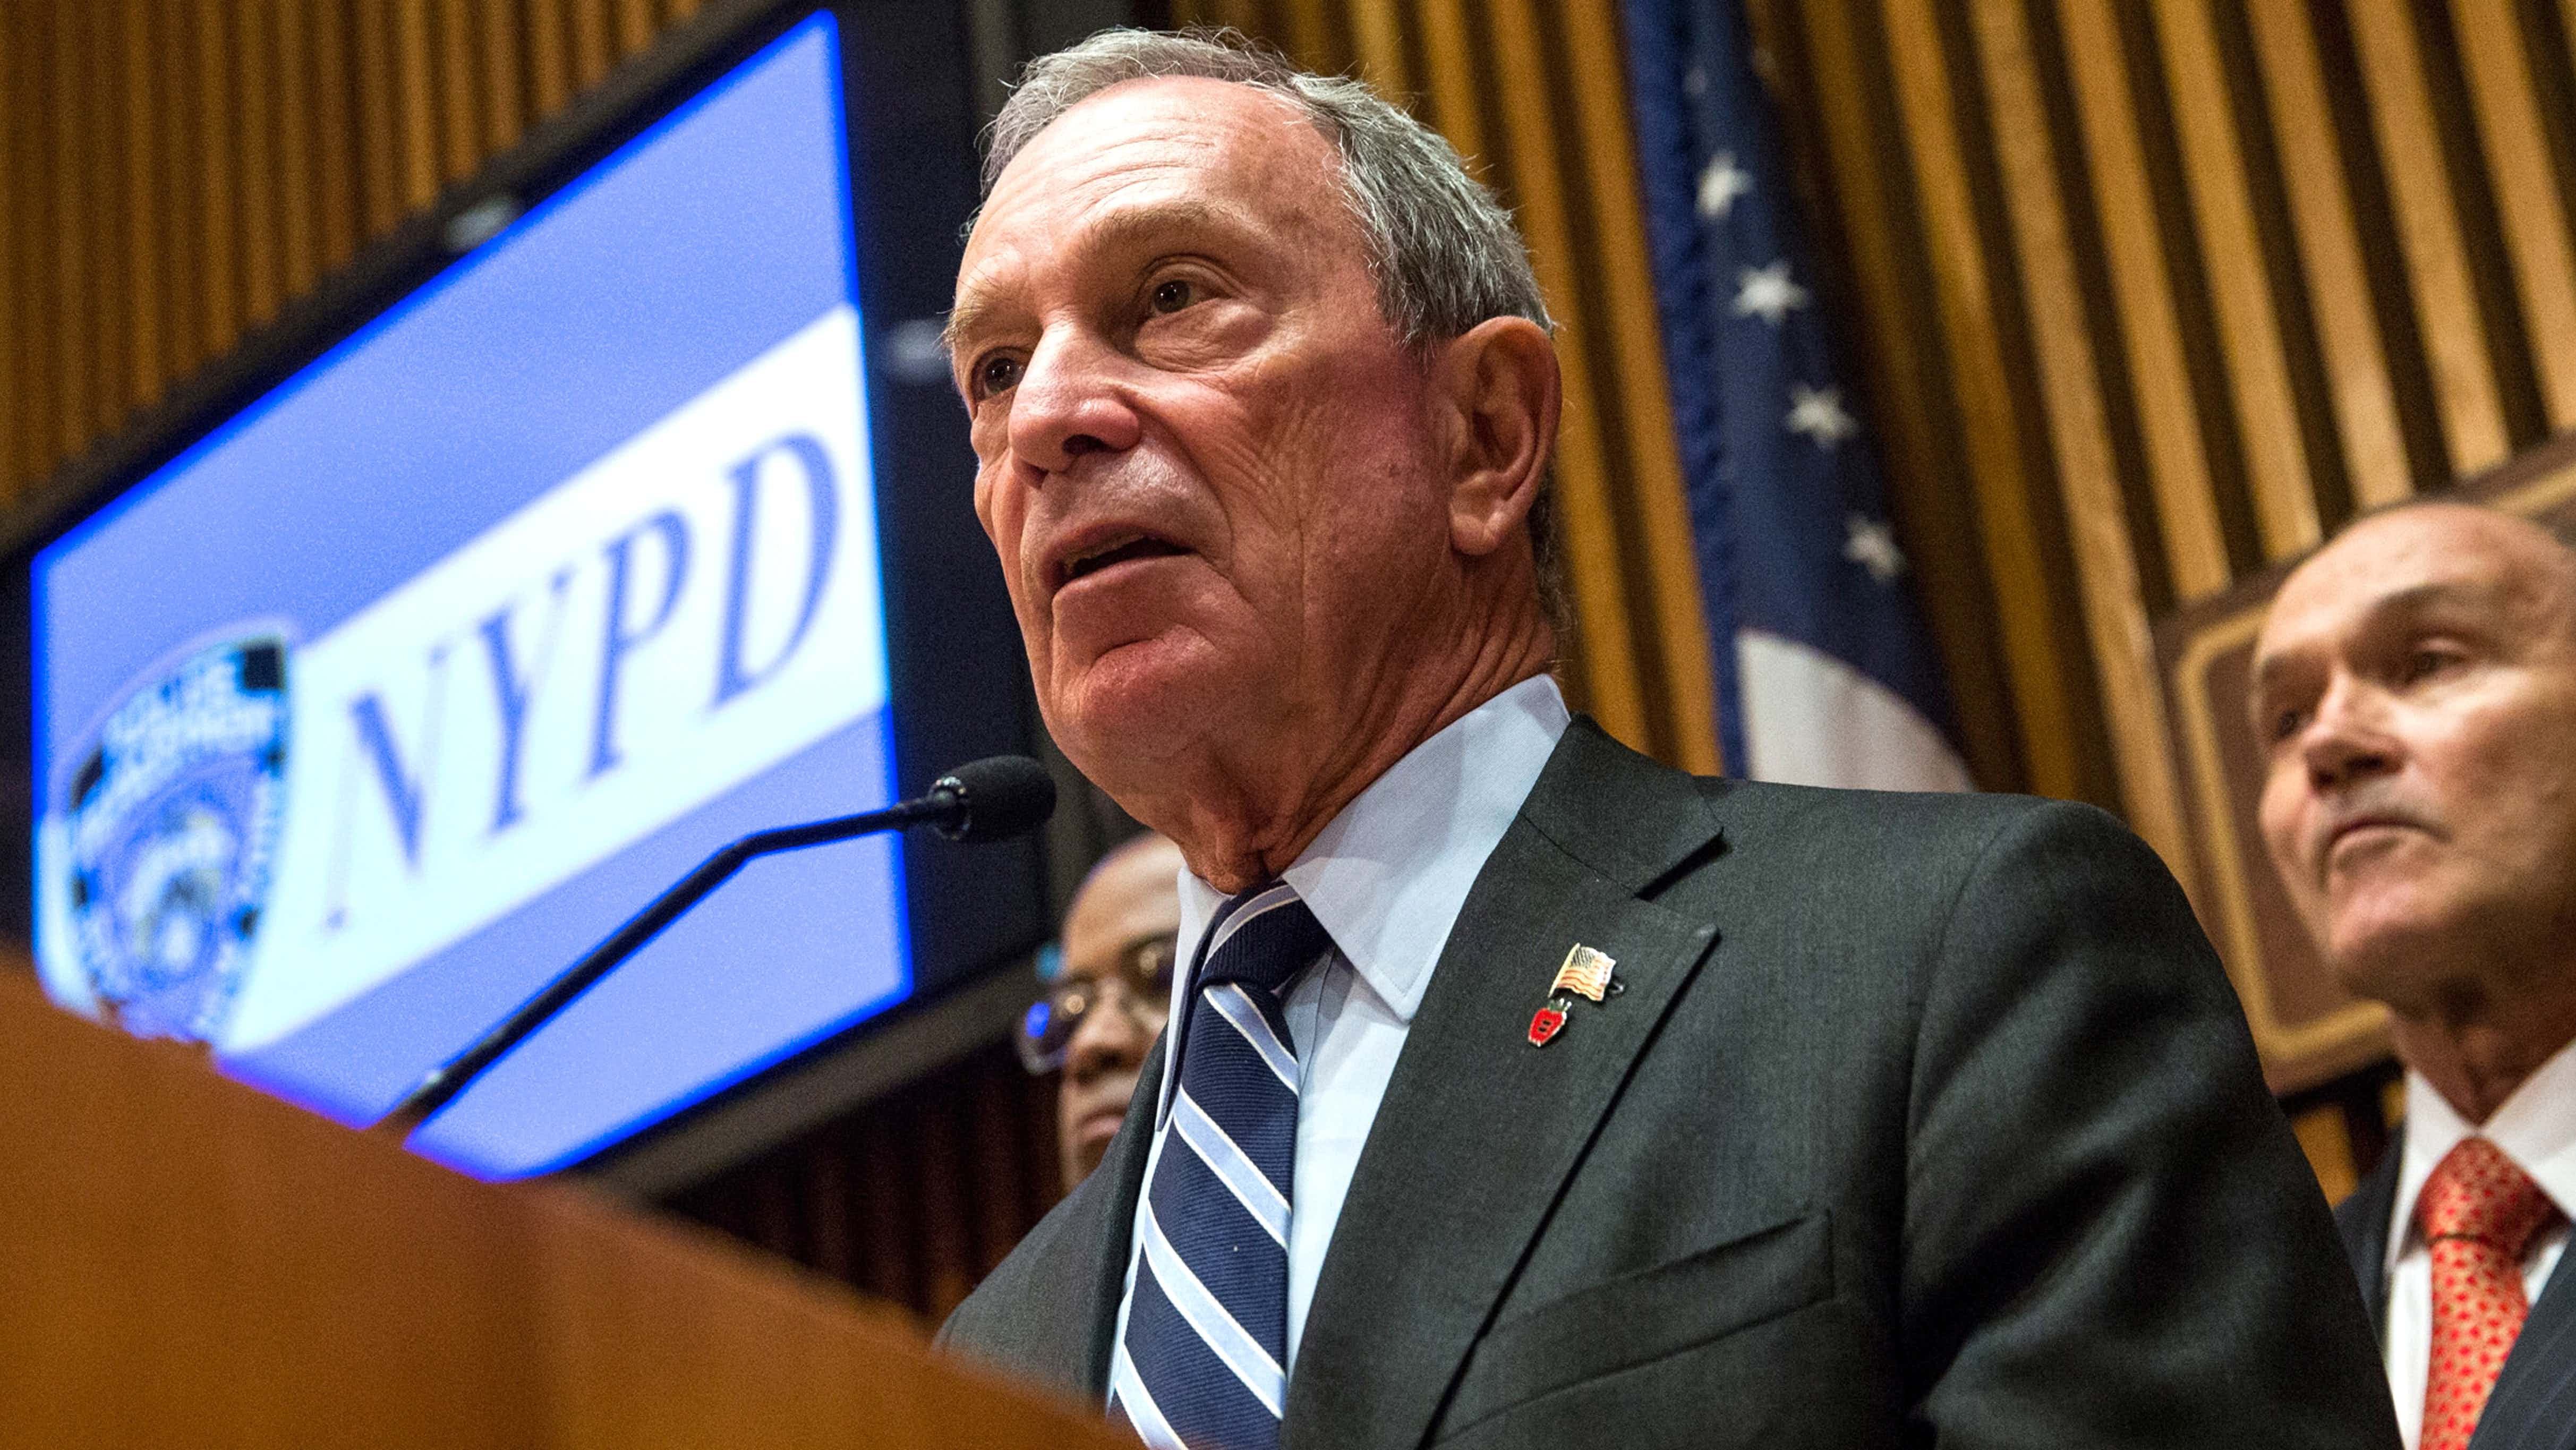 Bloomberg Unveils Radical Anti-Freedom Plan Attacking Second Amendment Rights